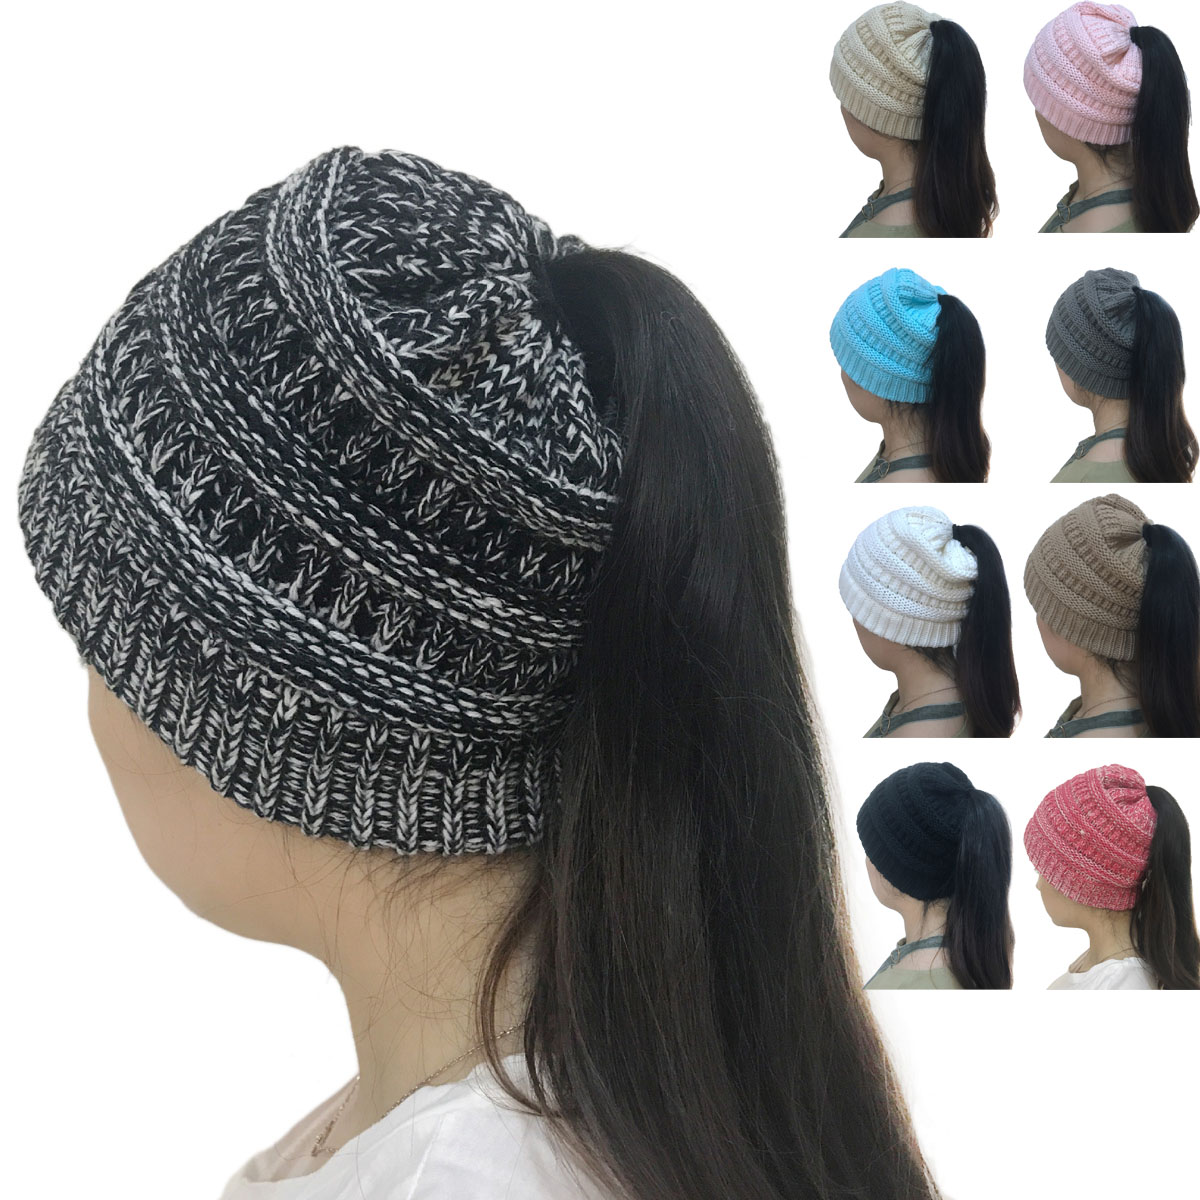 fed6949dc Details about Fashion Women Stretch Knit Hat Bun Ponytail Beanie Holey Warm  Winter